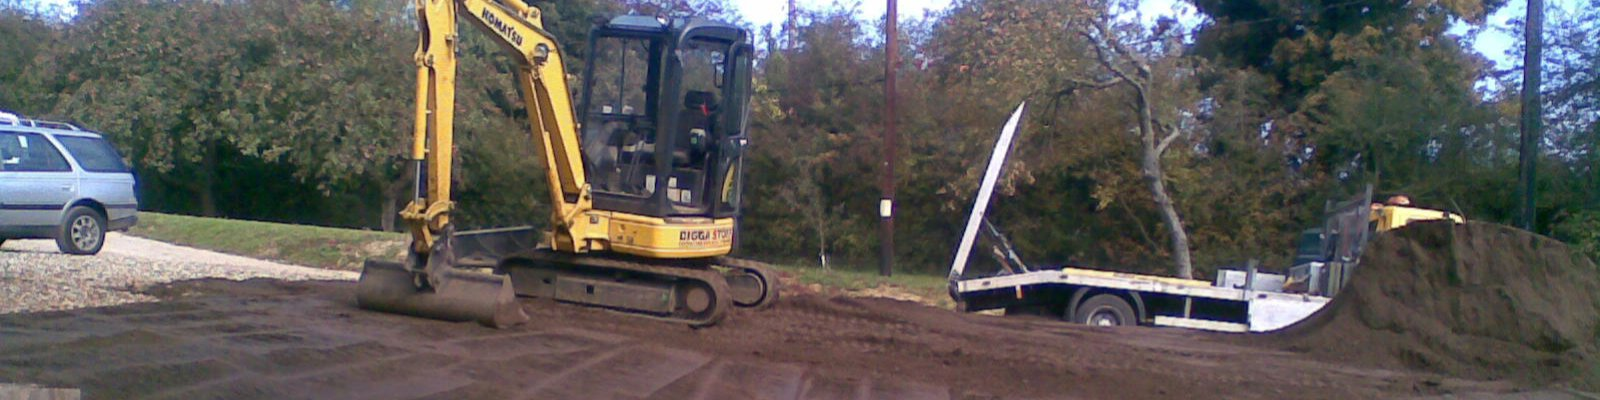 Operated Plant Hire Ipswich